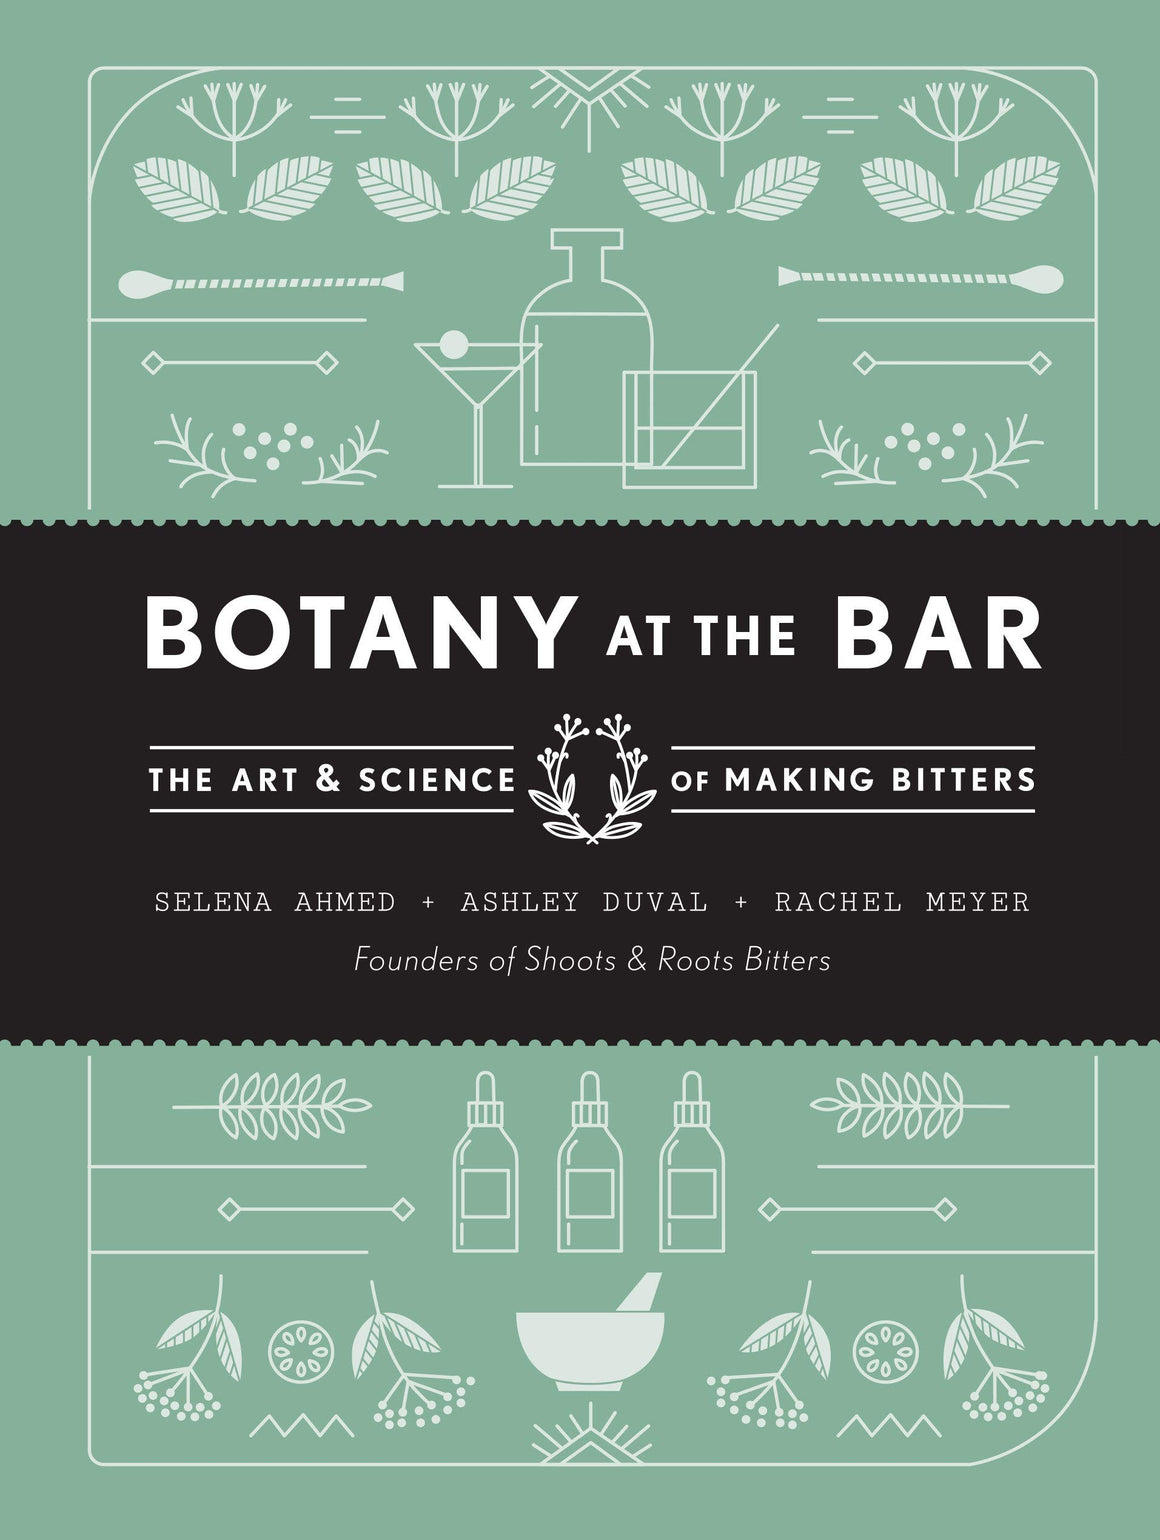 (Bitters) Selena Ahmed, Ashley Duval, and Rachel Meyer. Botany at the Bar: The Art and Science of Making Bitters